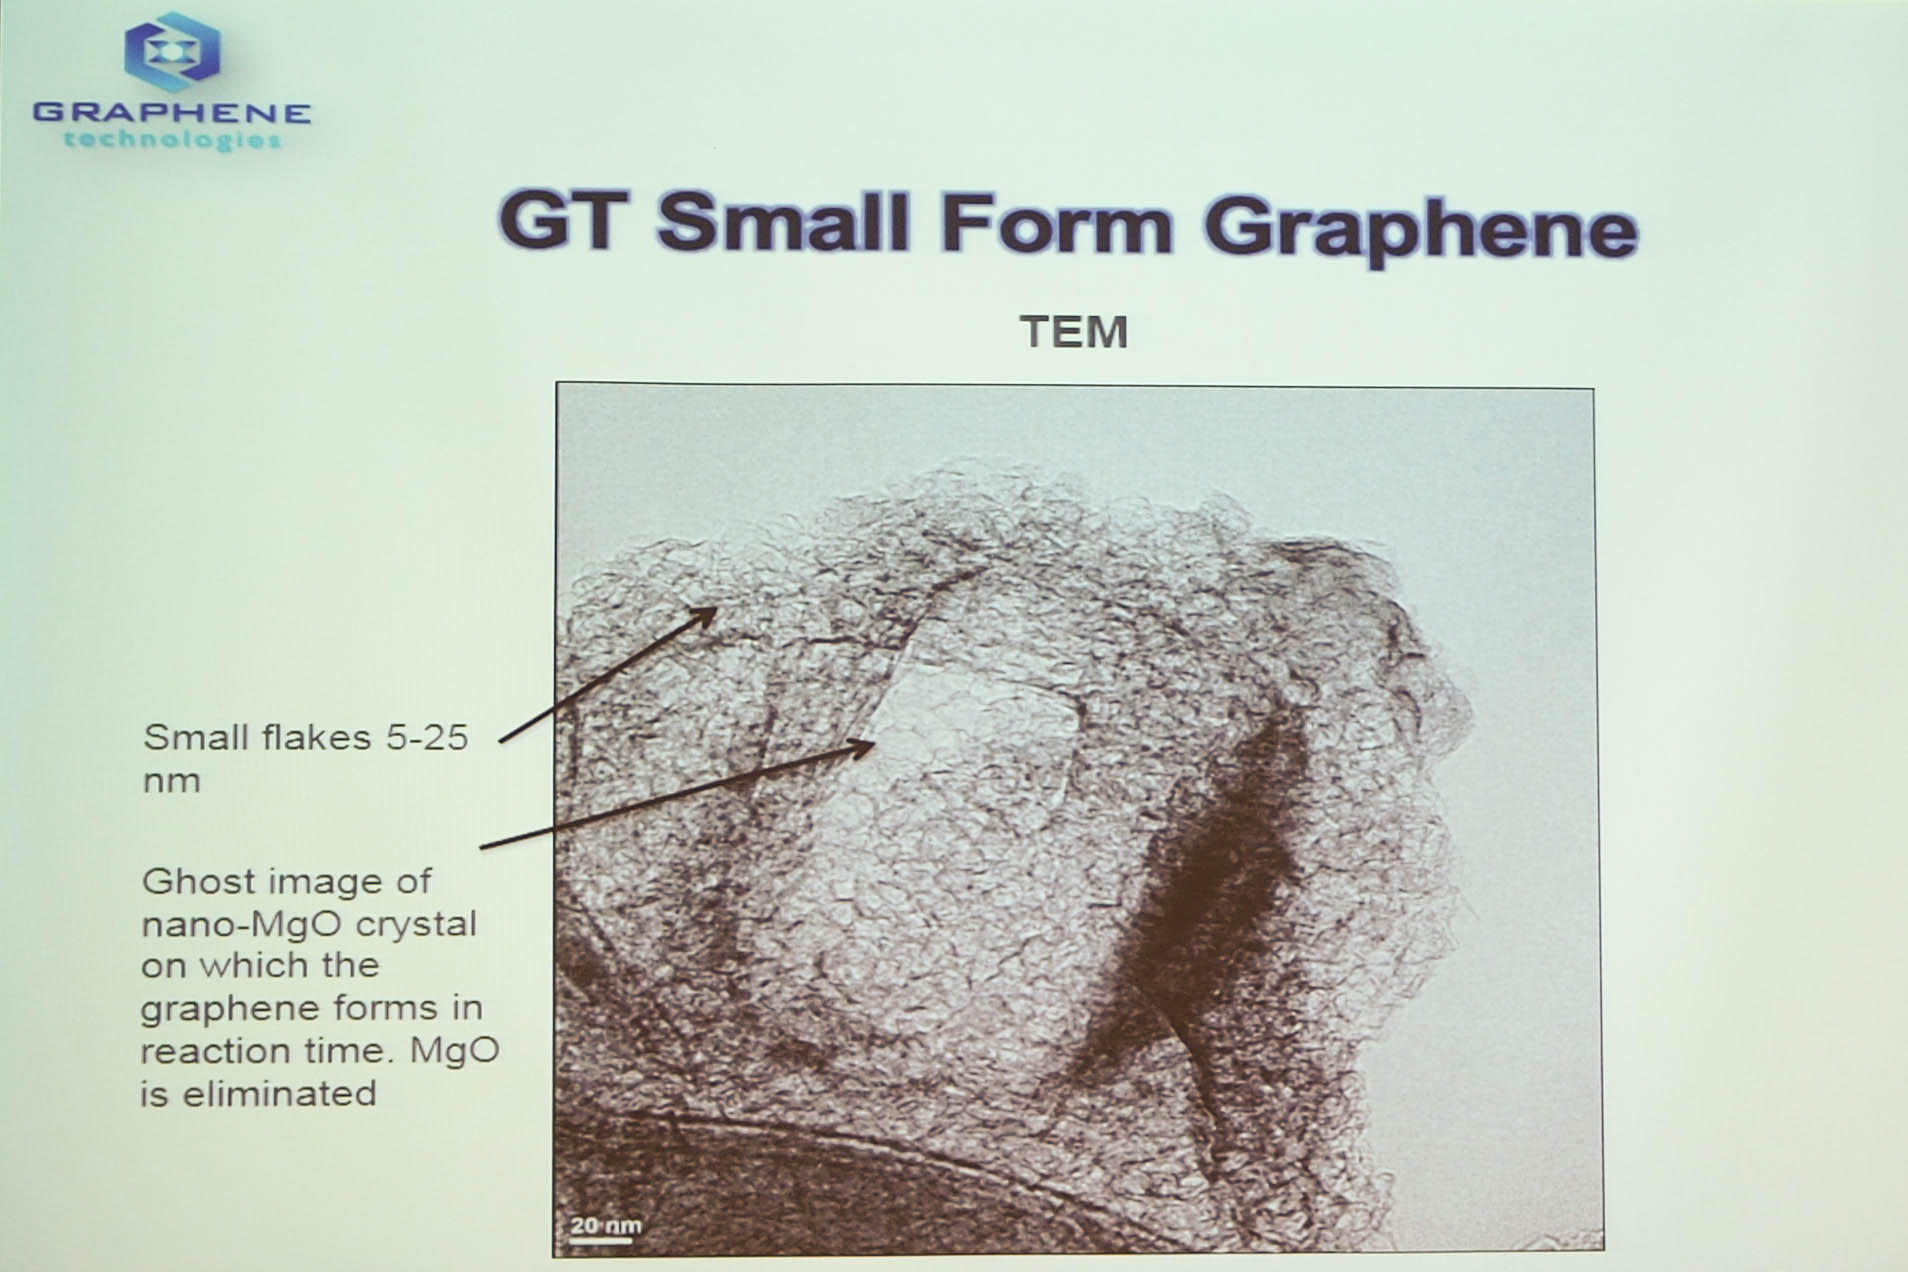 Graphene Technologies's grapene, produced from carbon dioxide